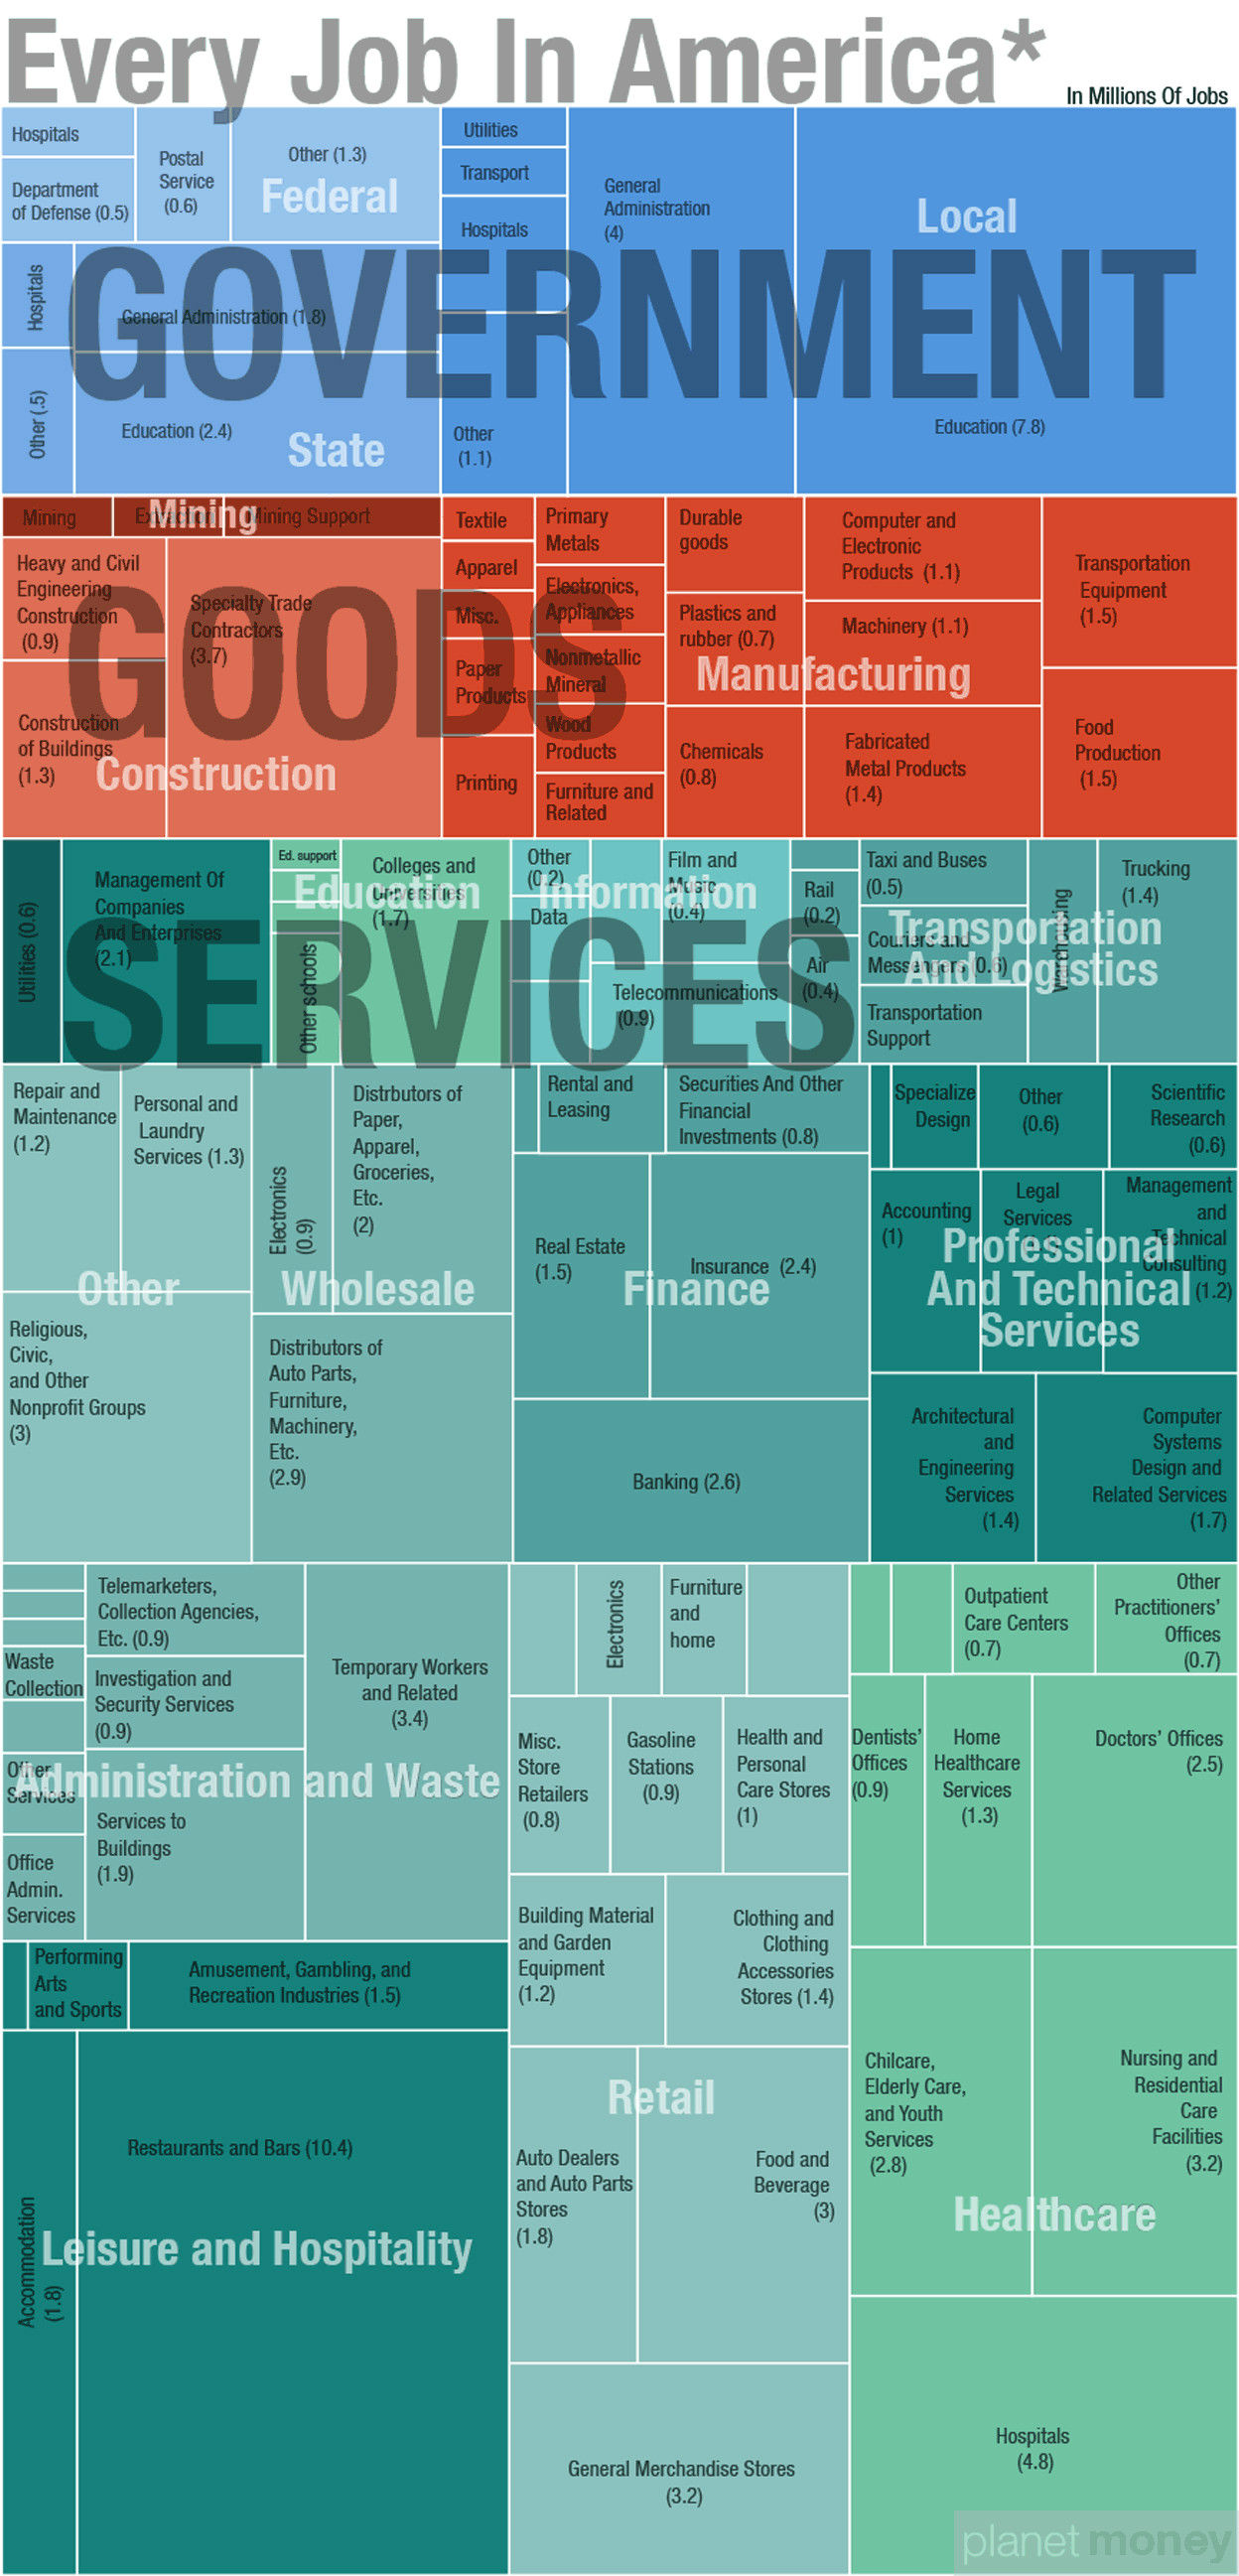 Every Job in America [Infographic]